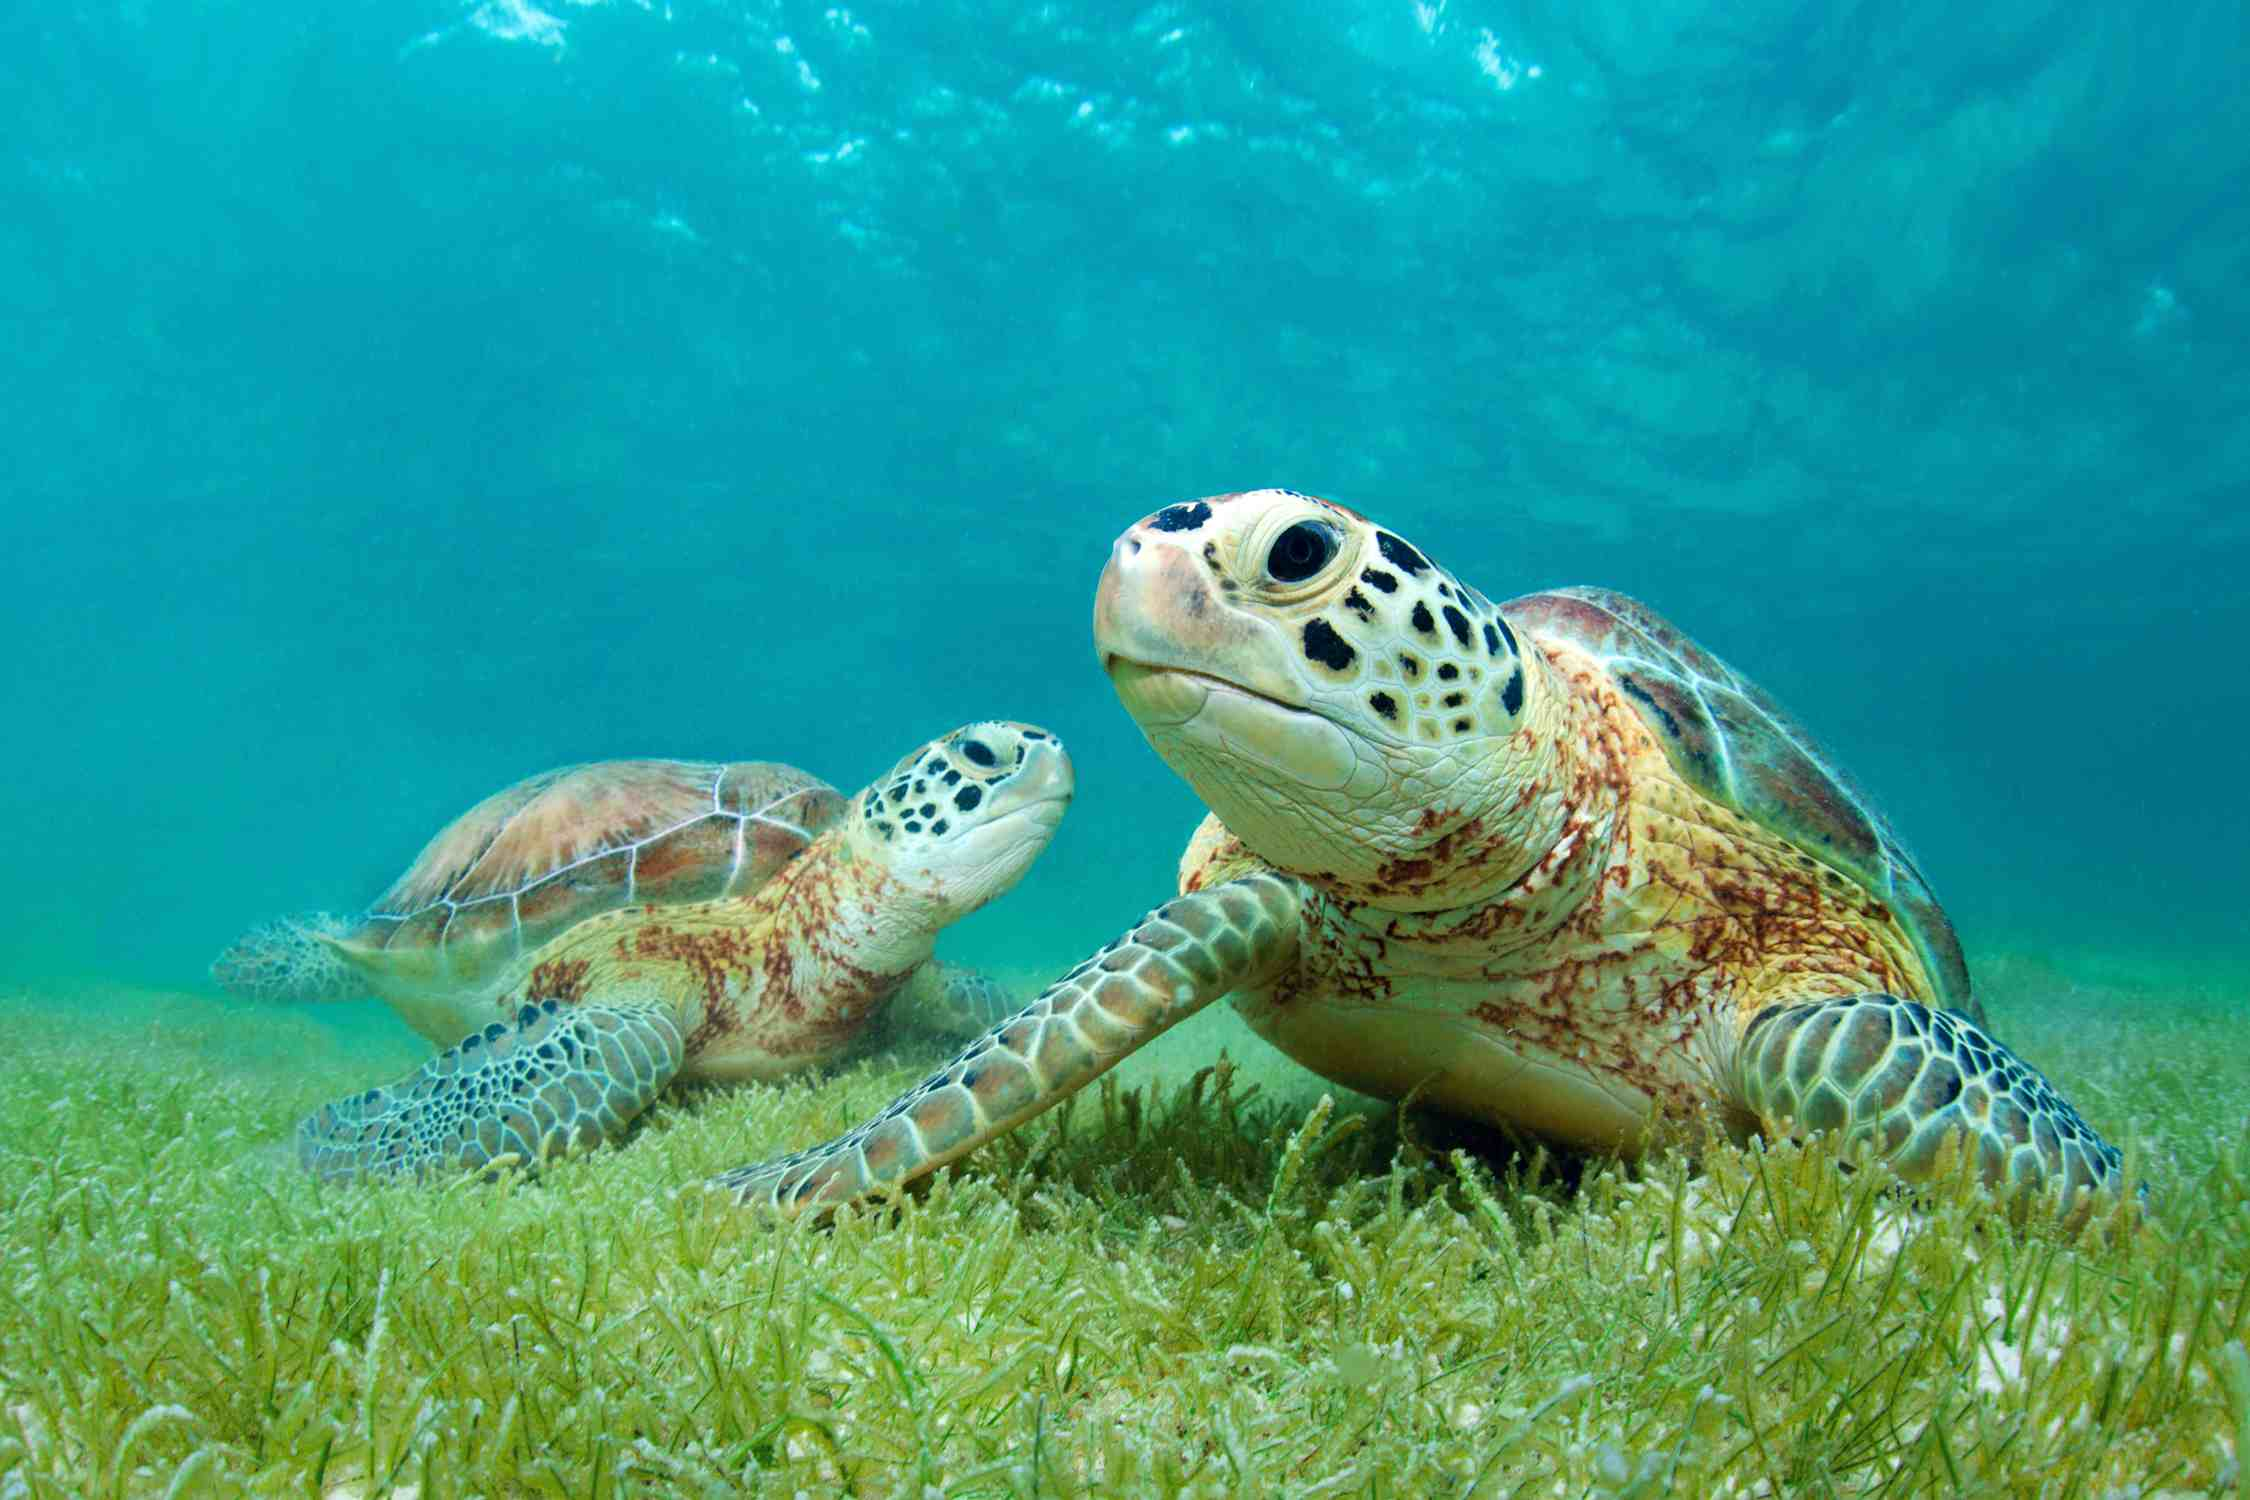 These green sea turtles are one of 293 species of turtles alive today.